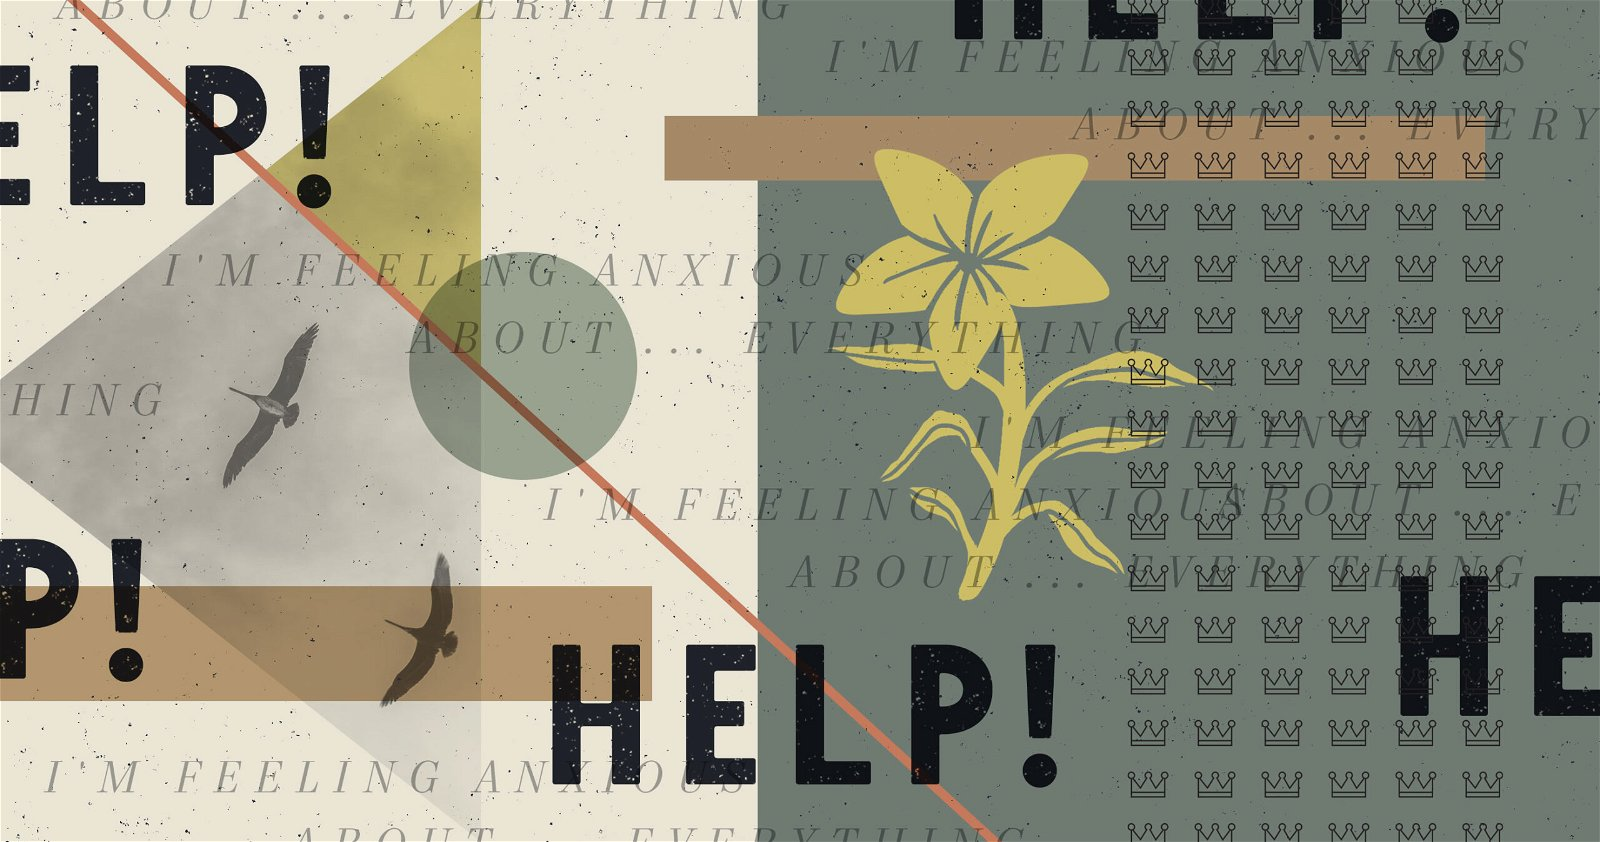 Help! I'm Feeling Anxious about Everything